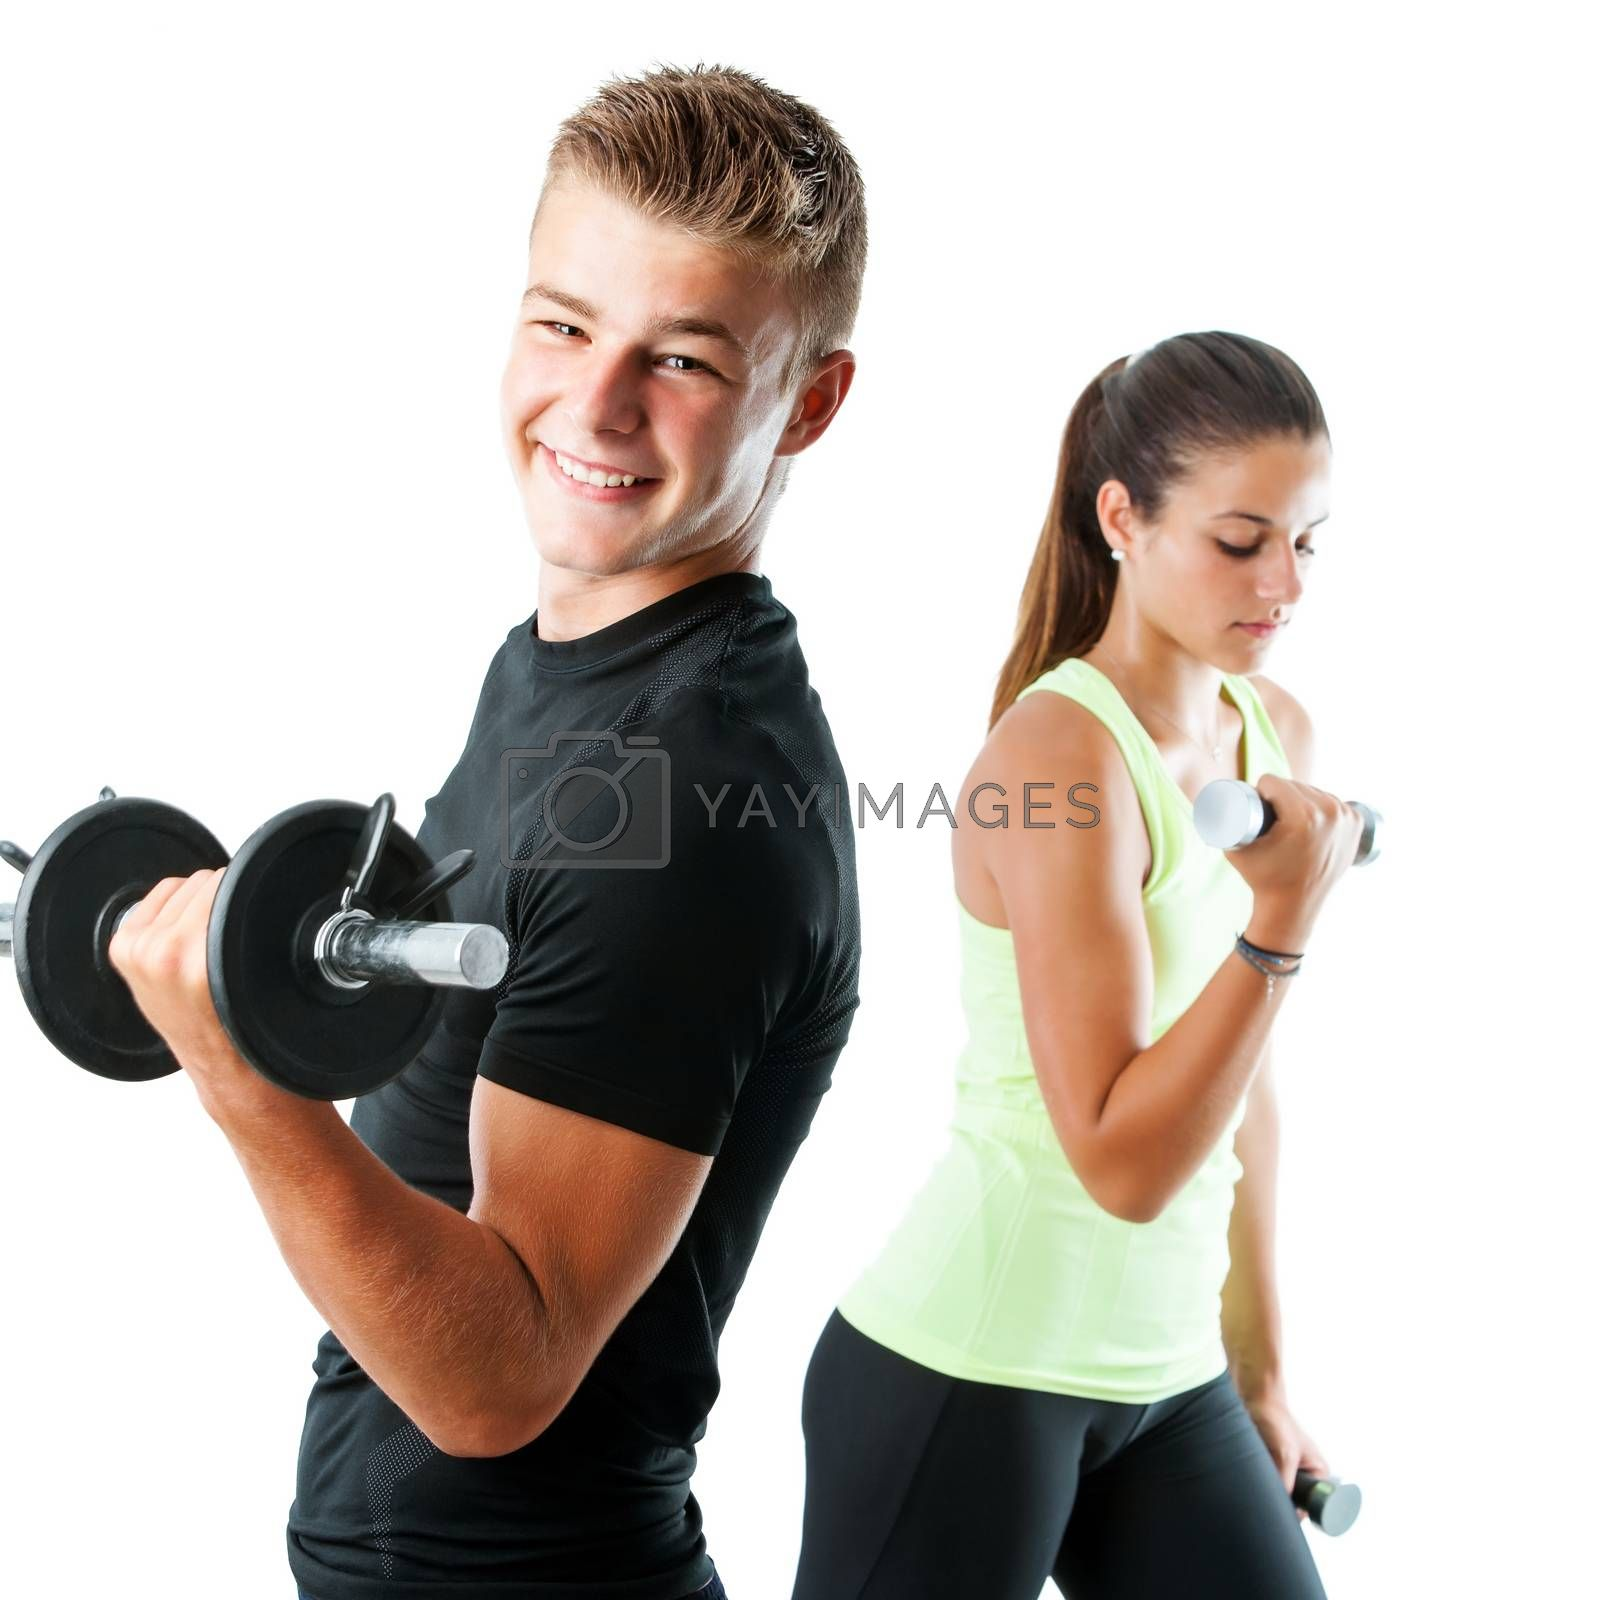 Close up portrait of handsome teen boy working out with weights.Out of focus girl working out in background.Isolated on white.